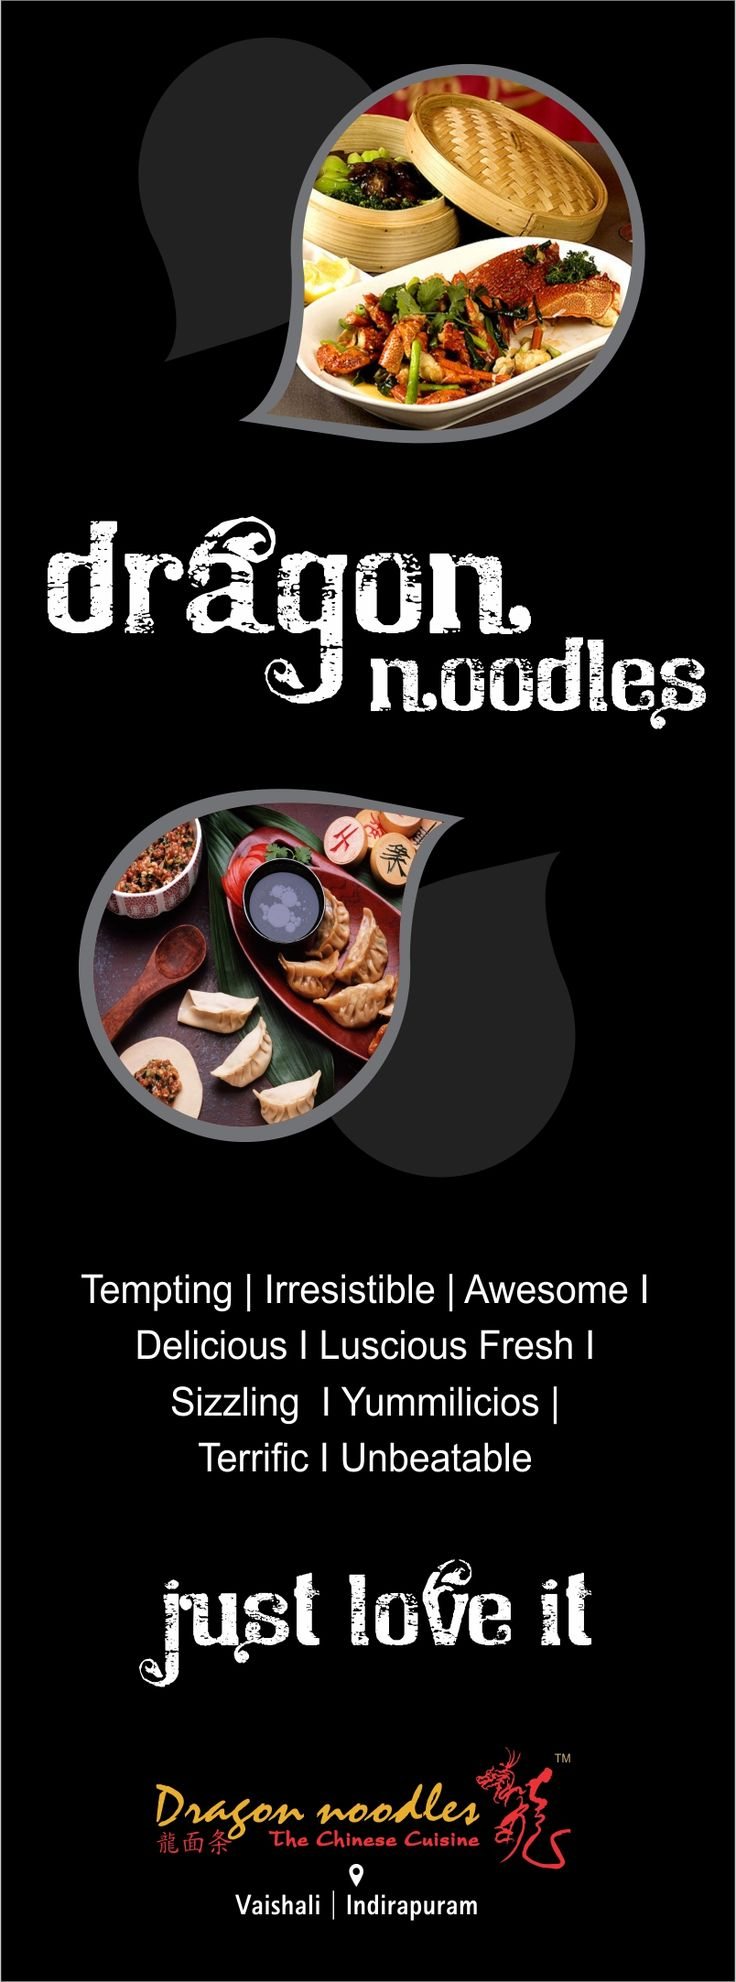 Originated for the love for food that is high on appeal, good in taste and excellent in quality.. #DragonNoodles #Chinese #Food #Ghaziabad #foodies